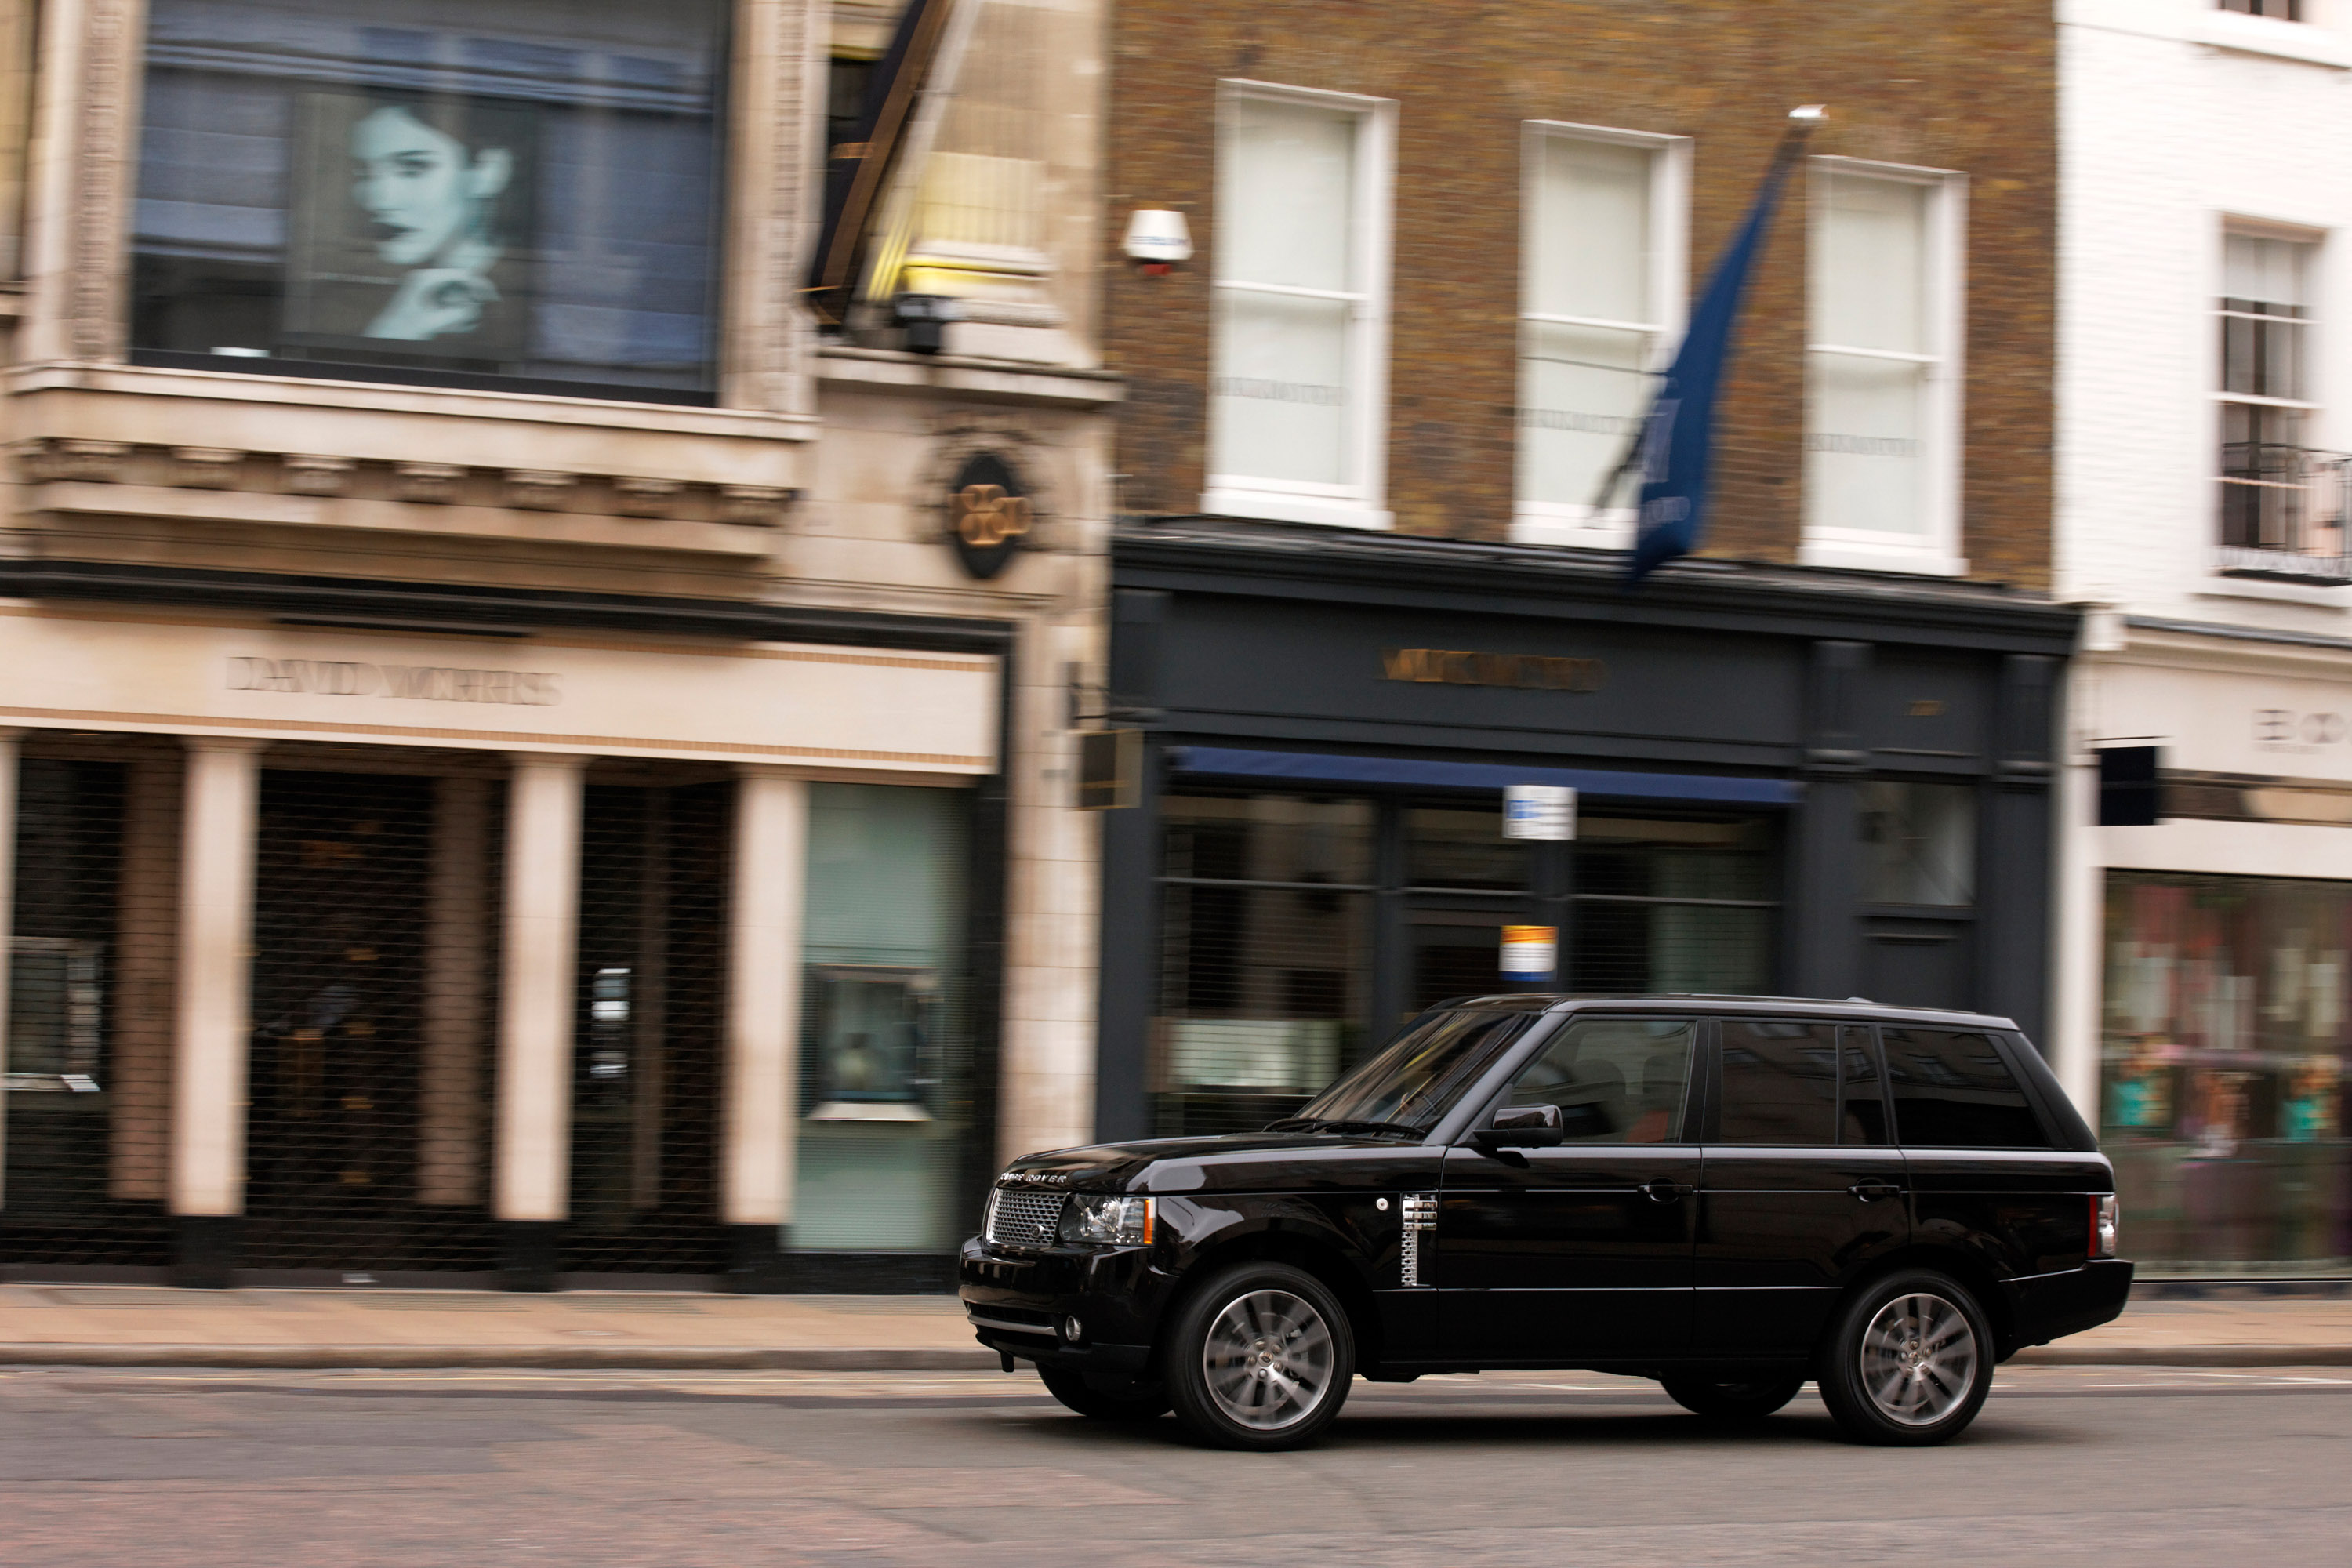 https://www.automobilesreview.com/gallery/2011-range-rover-autobiography-black-40th-anniversary-limited-edition/2011-range-rover-autobiography-black-40th-anniversary-limited-edition-13.jpg